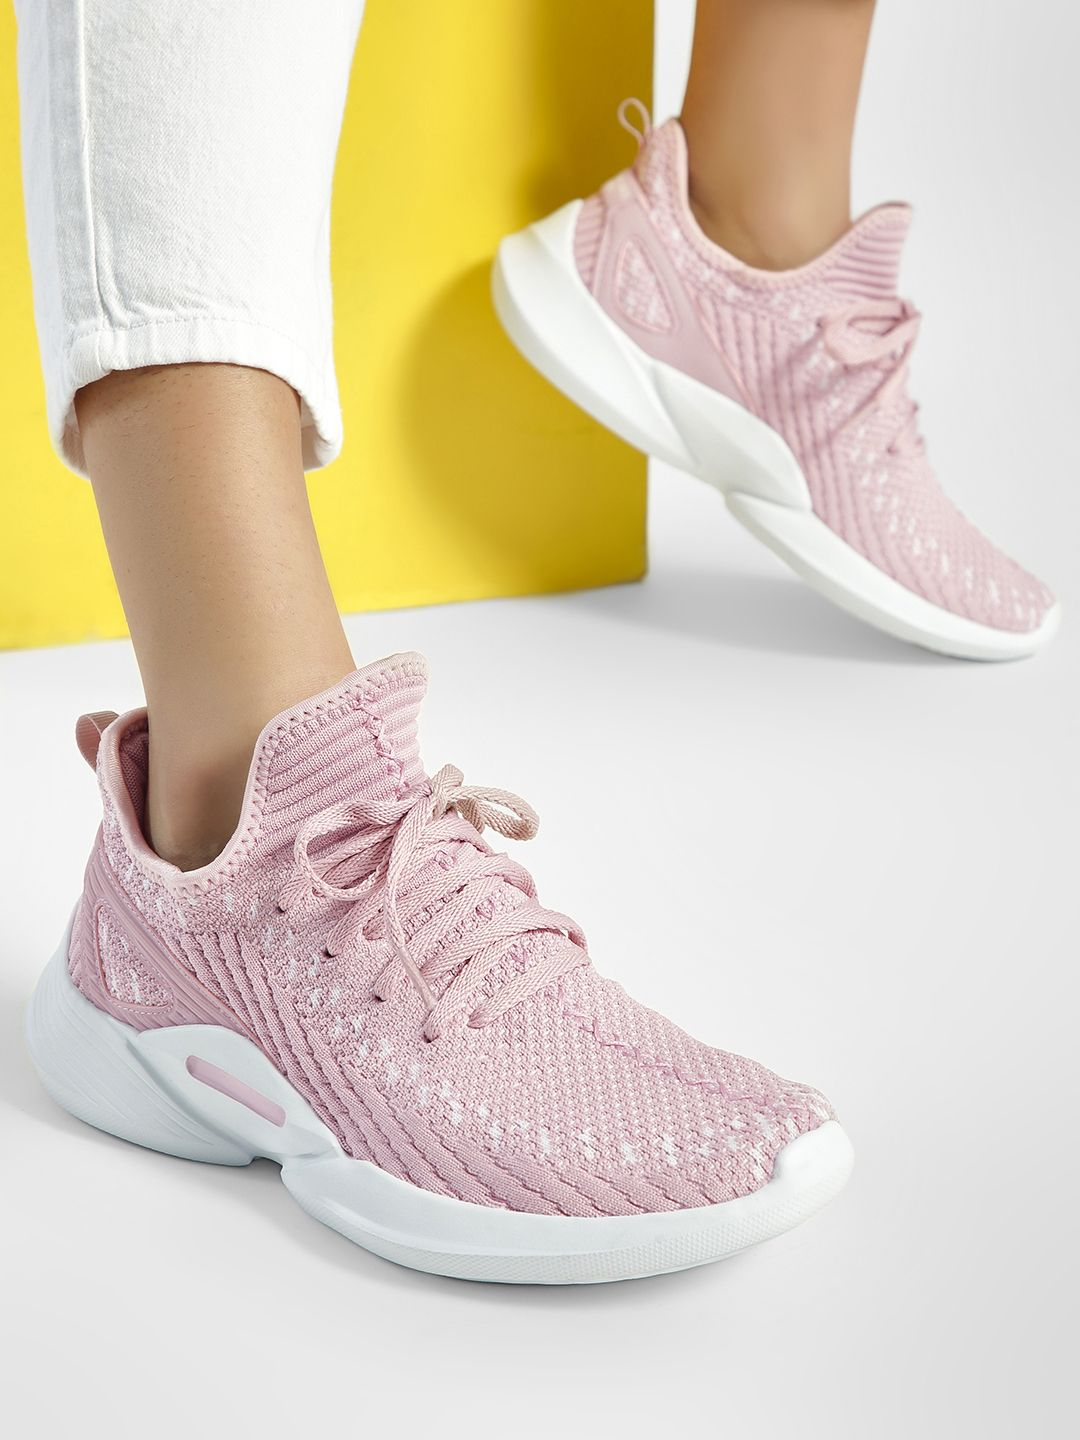 Buy 361 Degree Pink Two-Tone Knitted